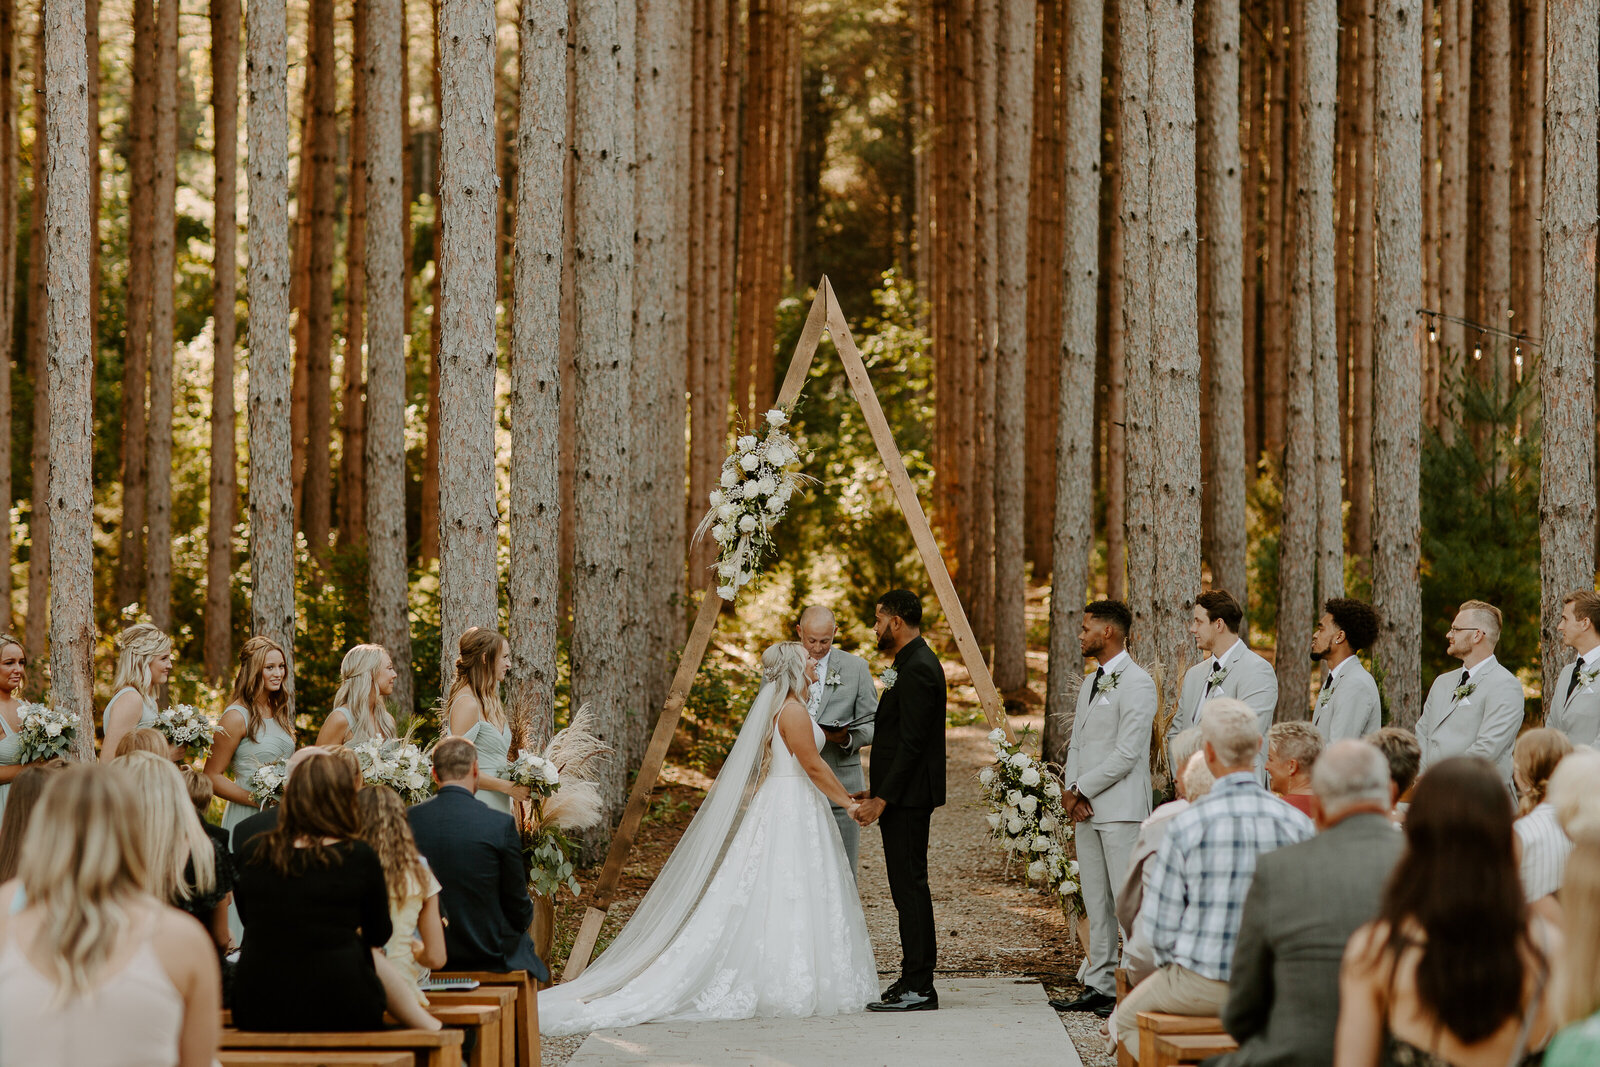 Ceremony at Cambridge Minnesota's Pinewood Event Center captured by Skyler and Vhan